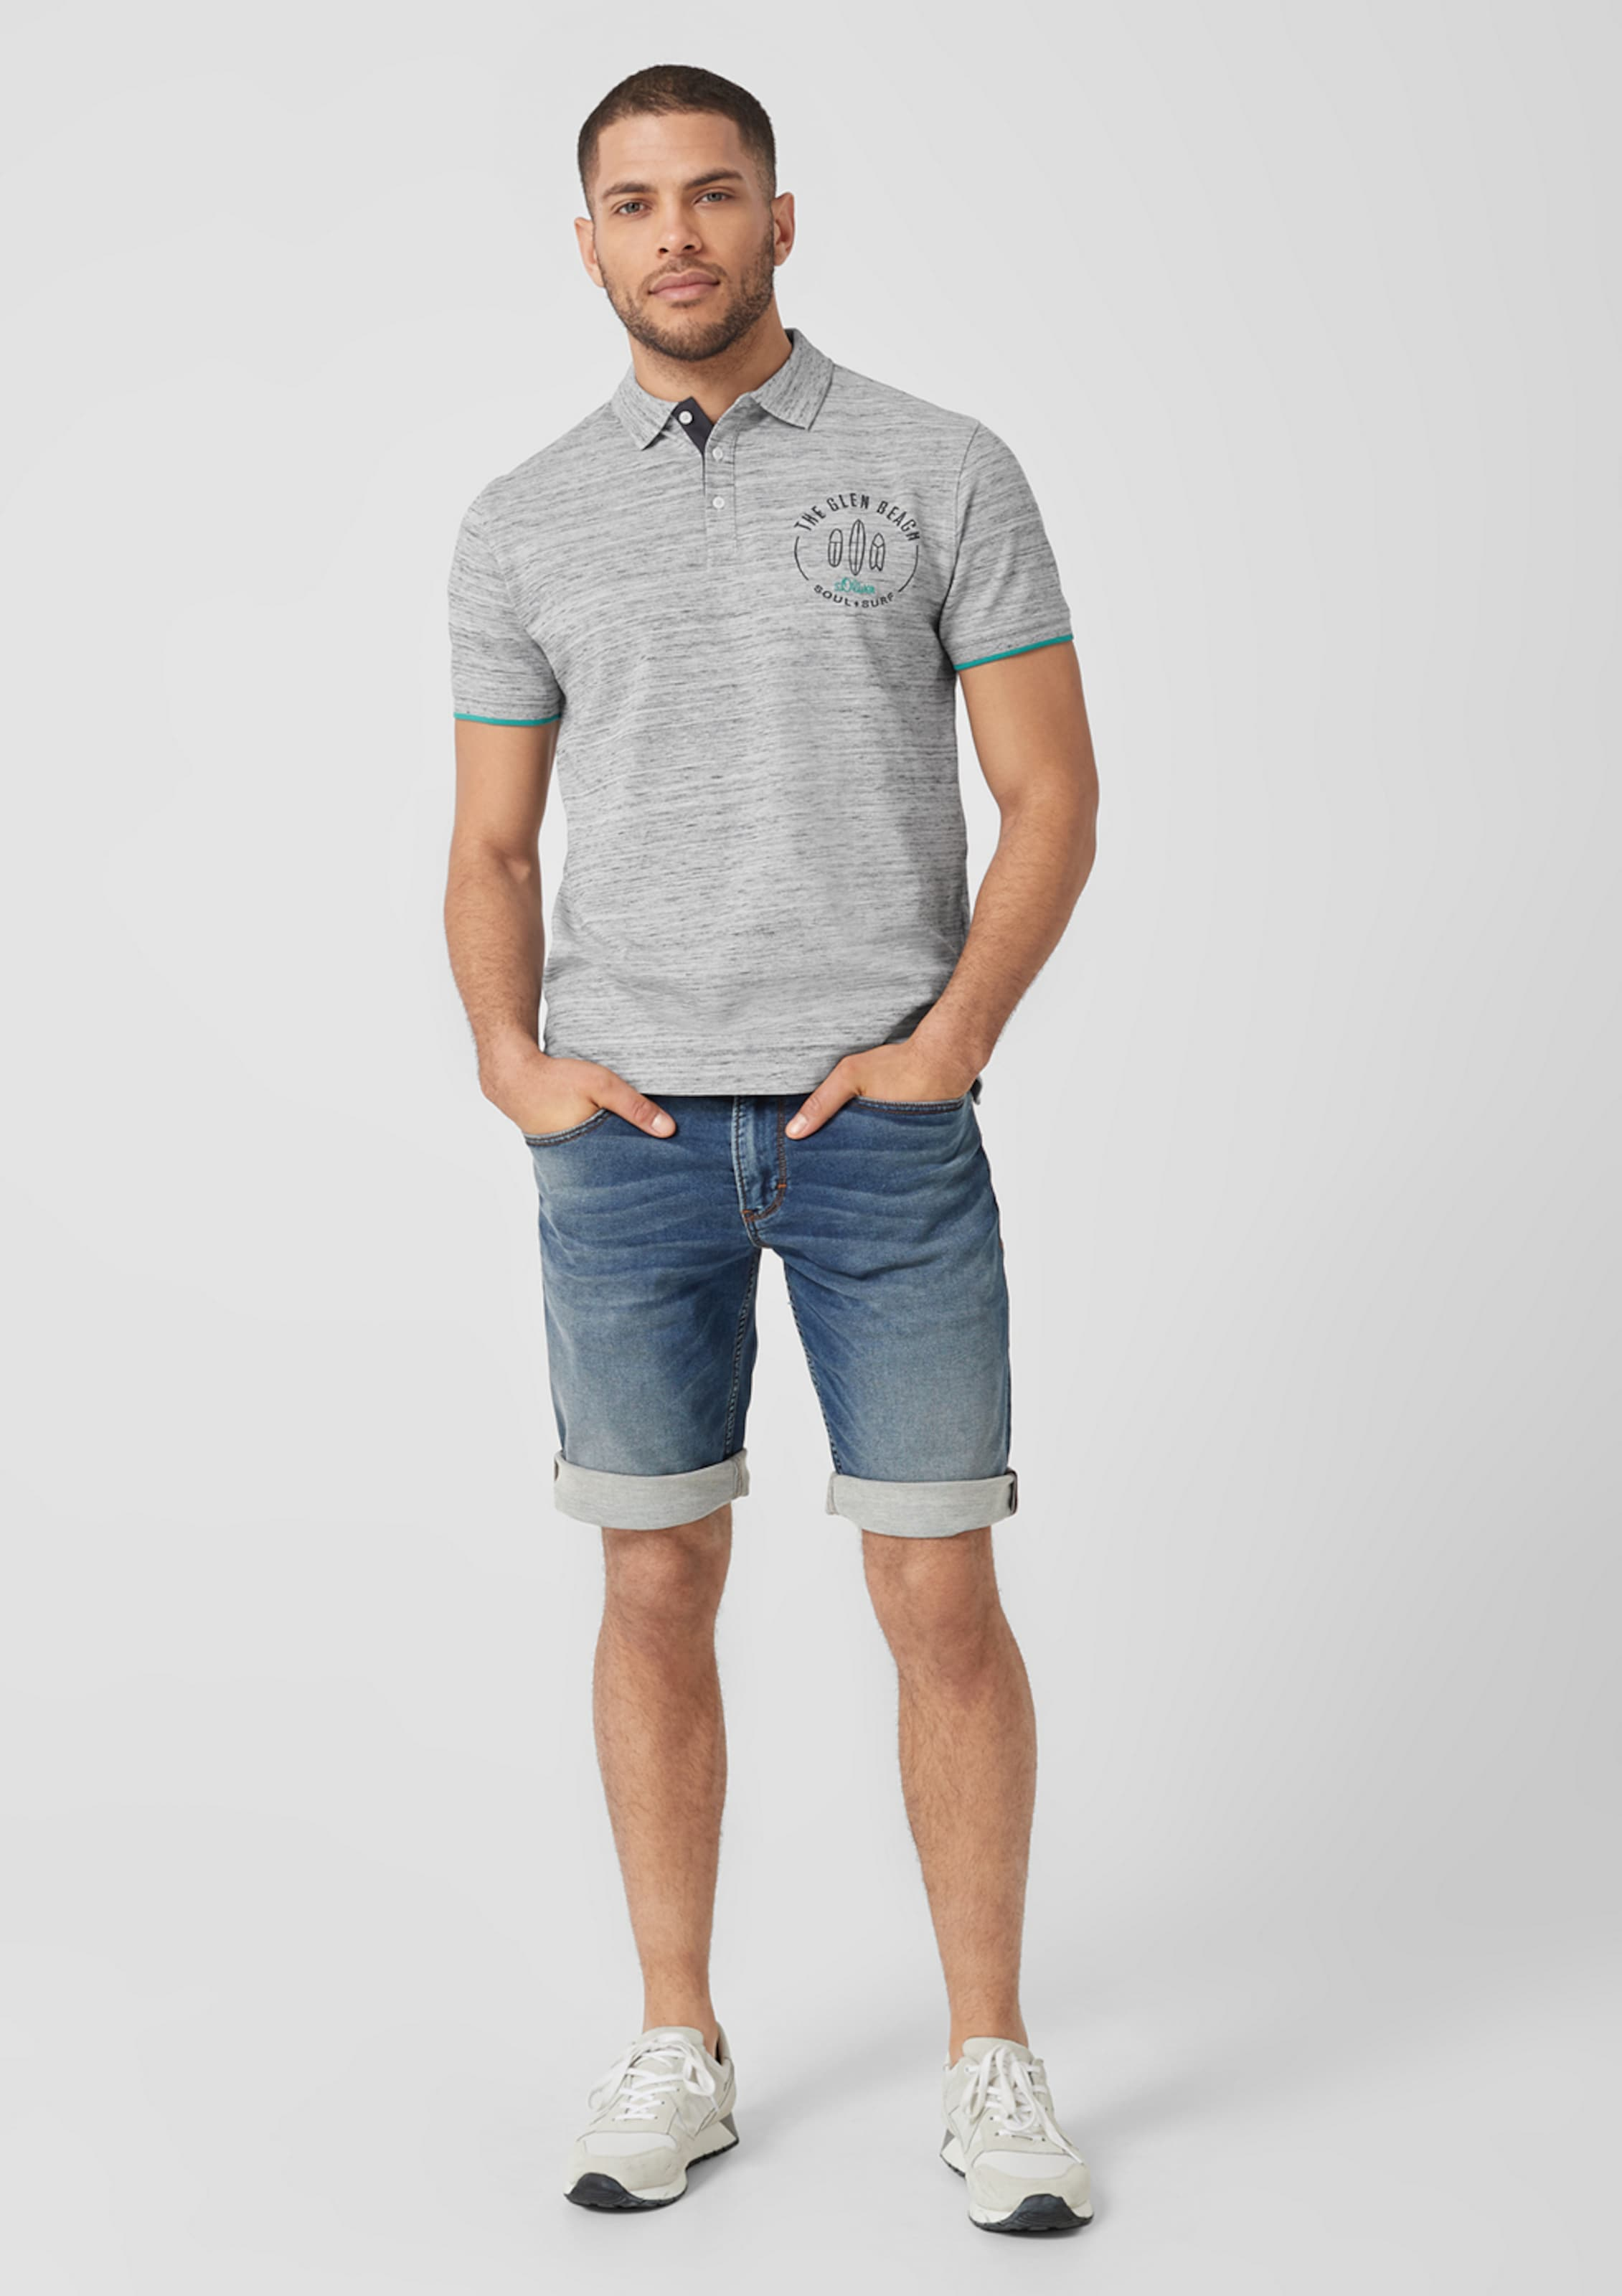 Label S oliver Red Grau Poloshirt In q34R5AjL